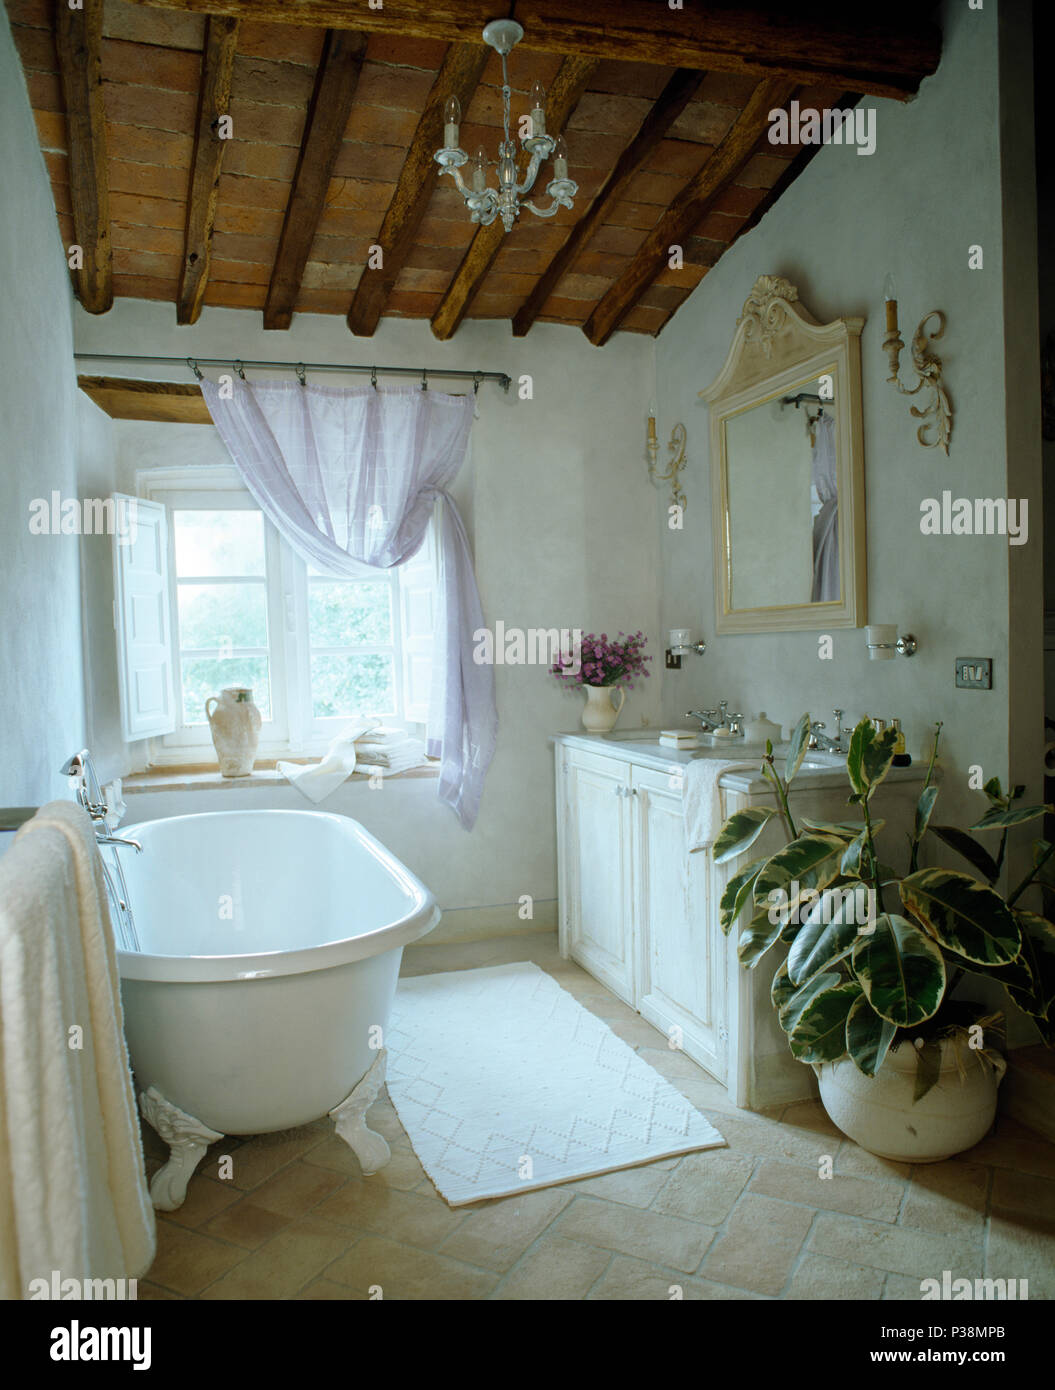 Roll-top bath and large houseplant in Tuscan country bathroom with on